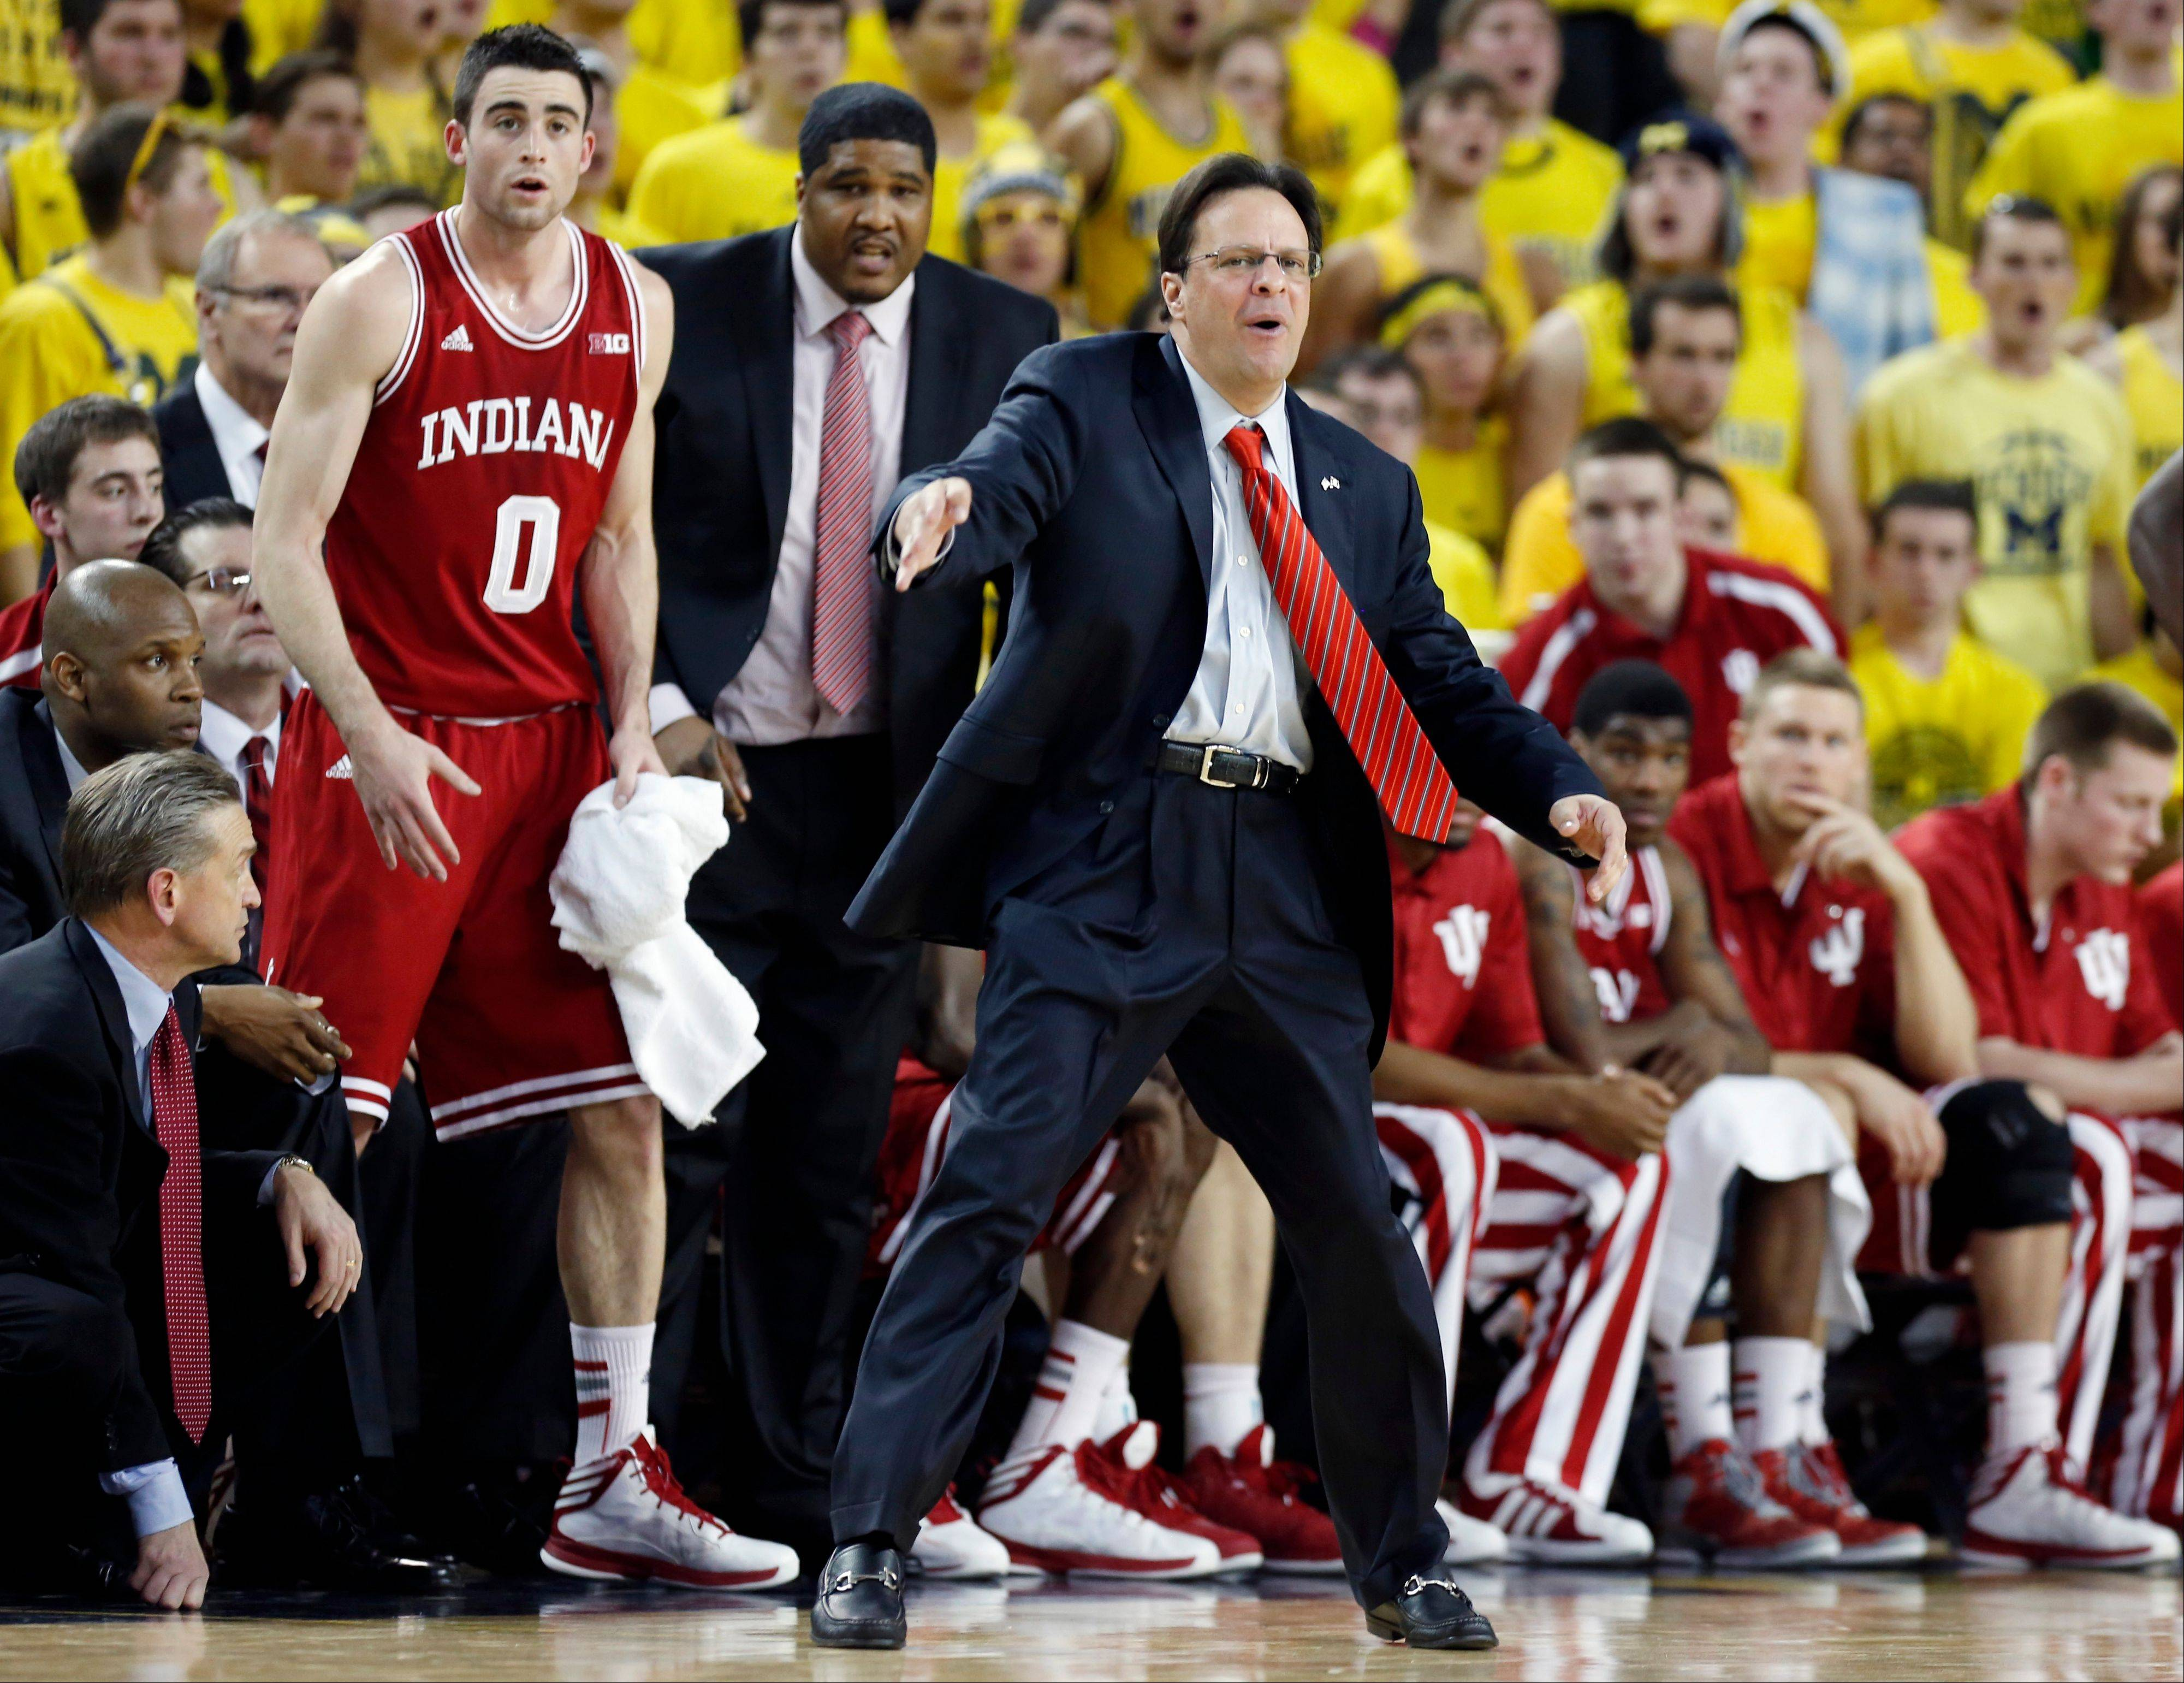 Indiana coach Tom Crean directs his team from the bench Sunday during the second half against Michigan in Ann Arbor, Mich. Indiana came from behind to defeat Michigan 72071 and capture their first outright Big Ten title in two decades.